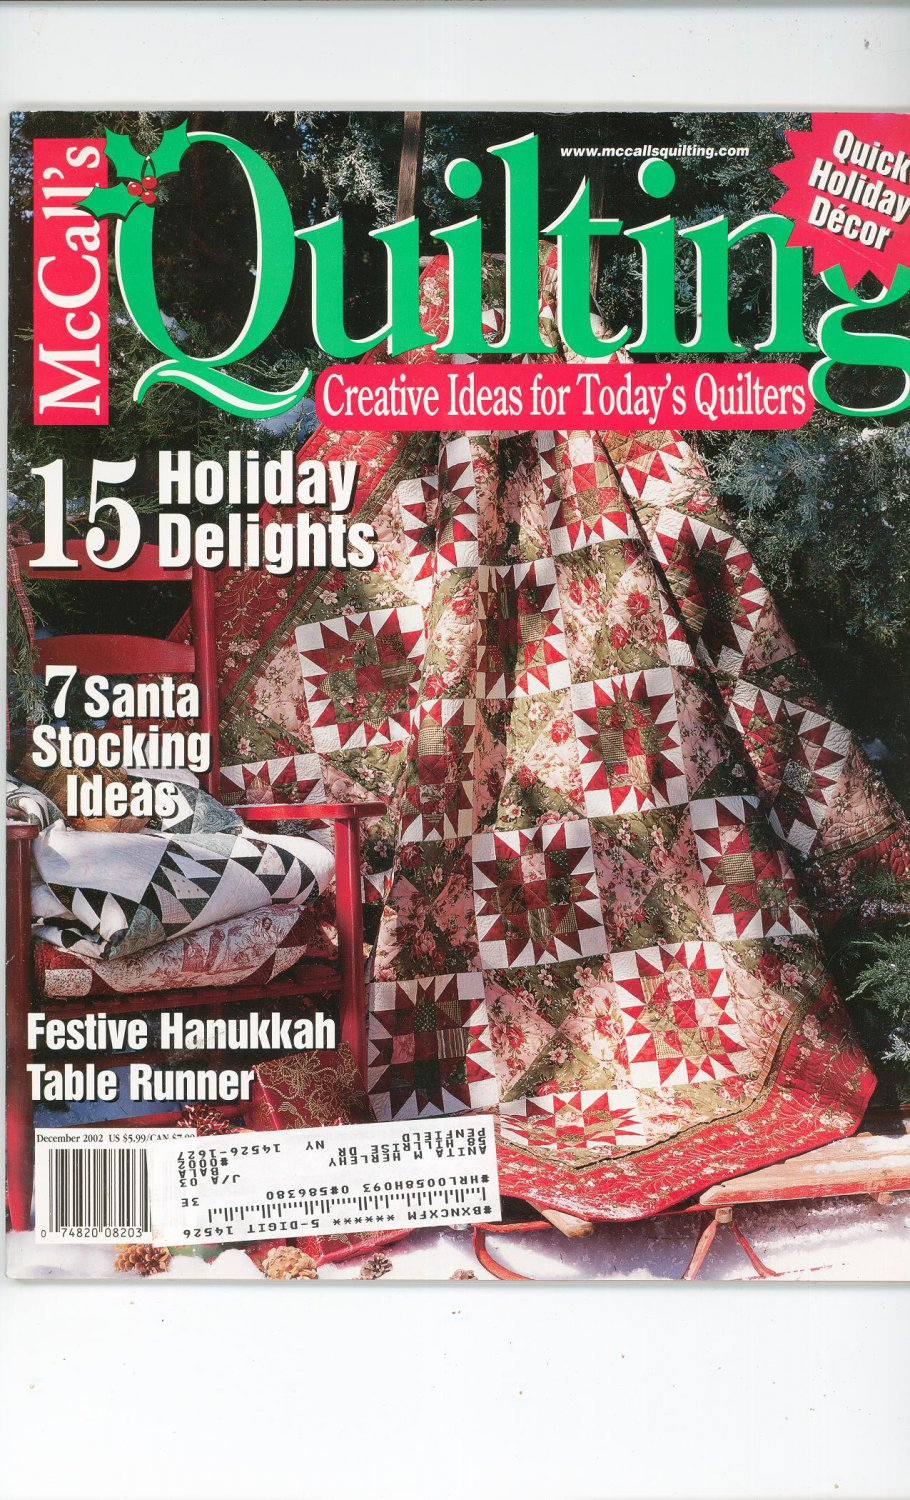 McCall's Quilting Magazine Back Issue December 2002 Quick Holiday Decor